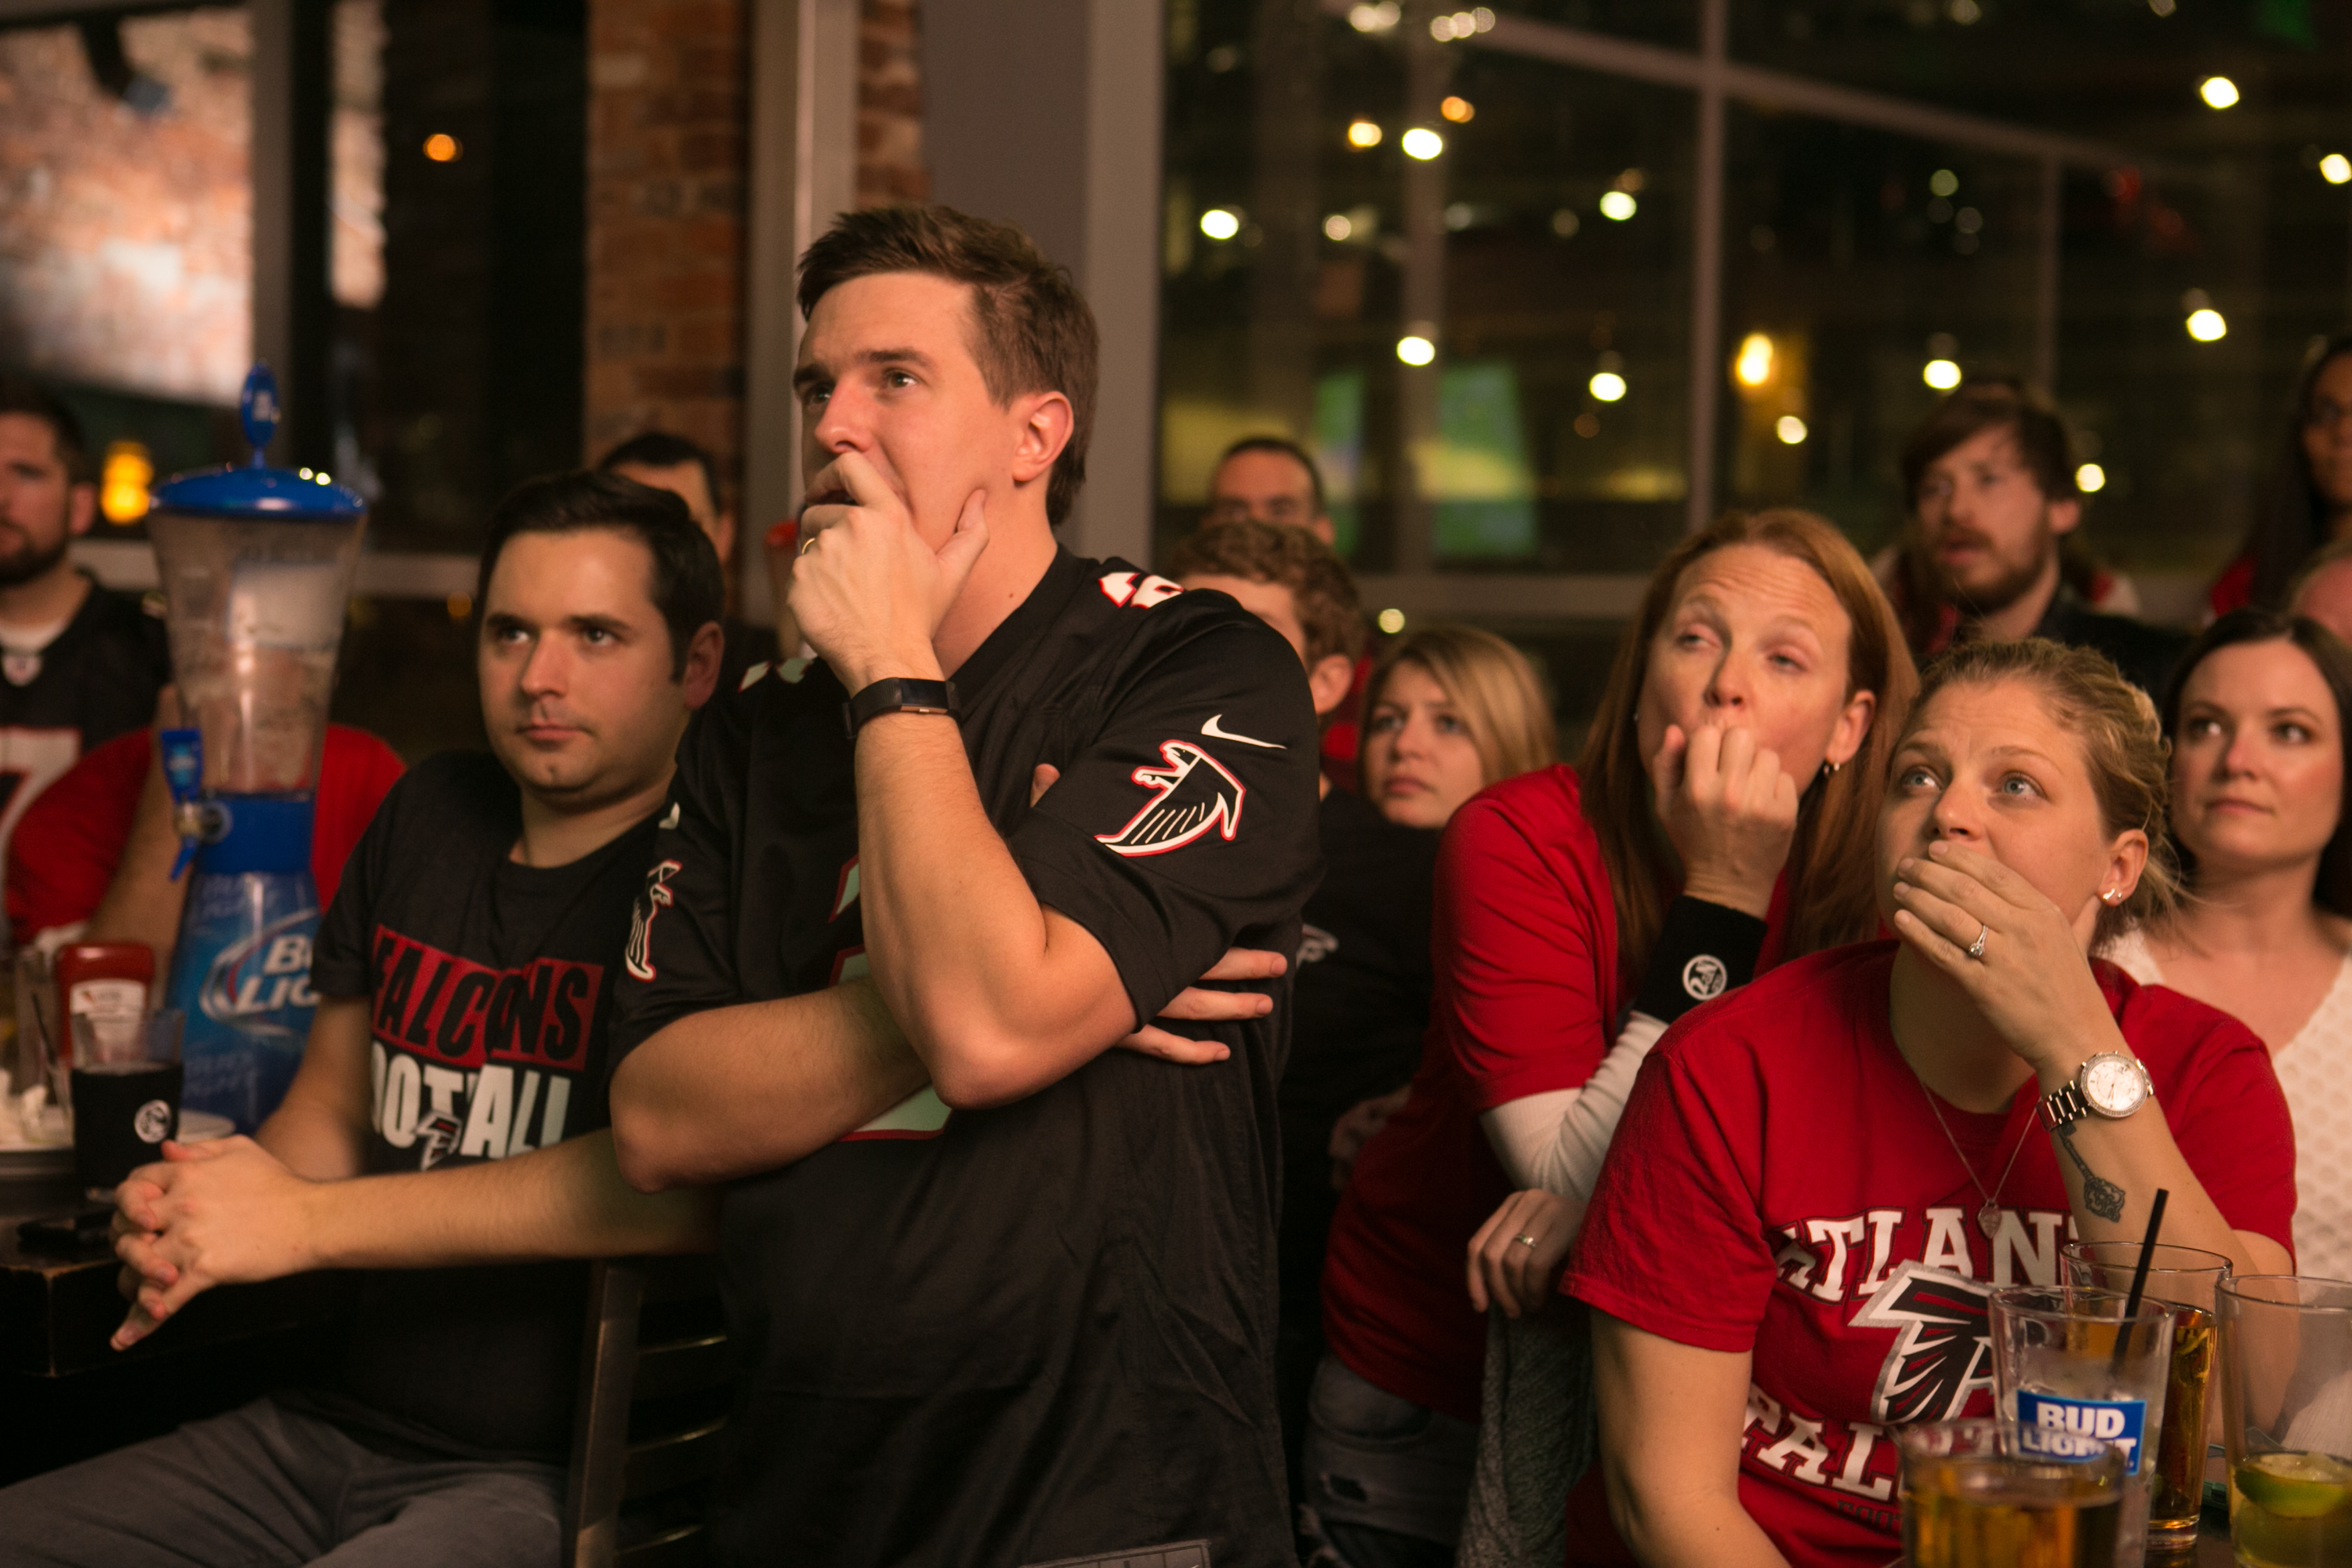 Falcons fans react while watching Super Bowl LI at an Atlanta bar. (Getty Images)